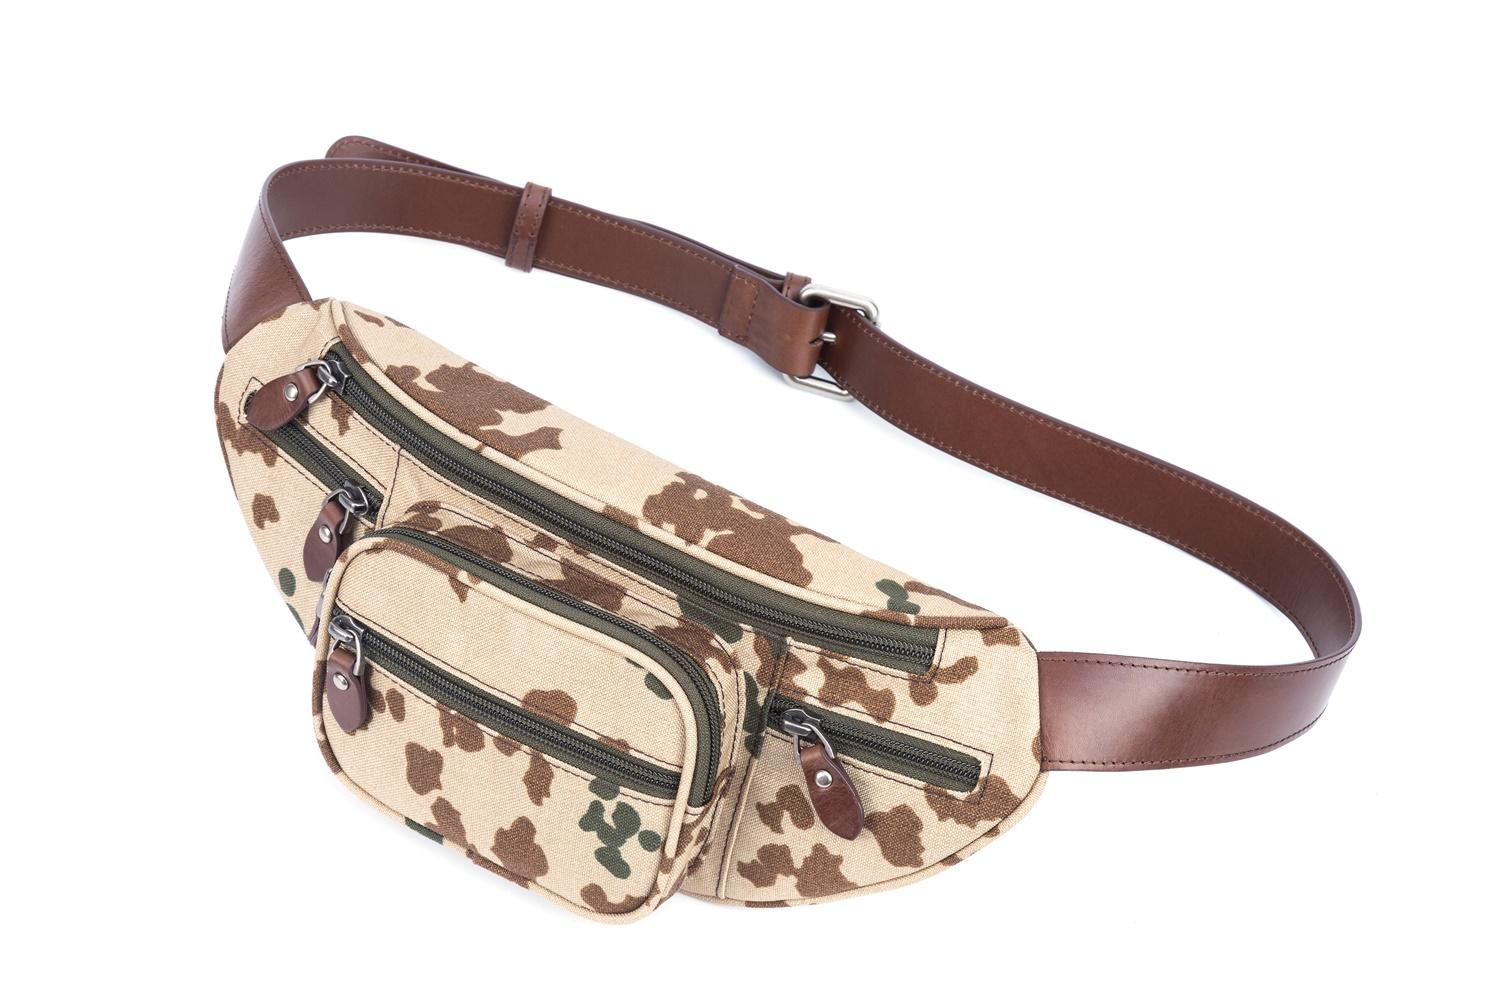 GF bags-Body Bag Genuine Leather Wax Leather Strap Camouflage Nylon Pocket-gaofeng Bags